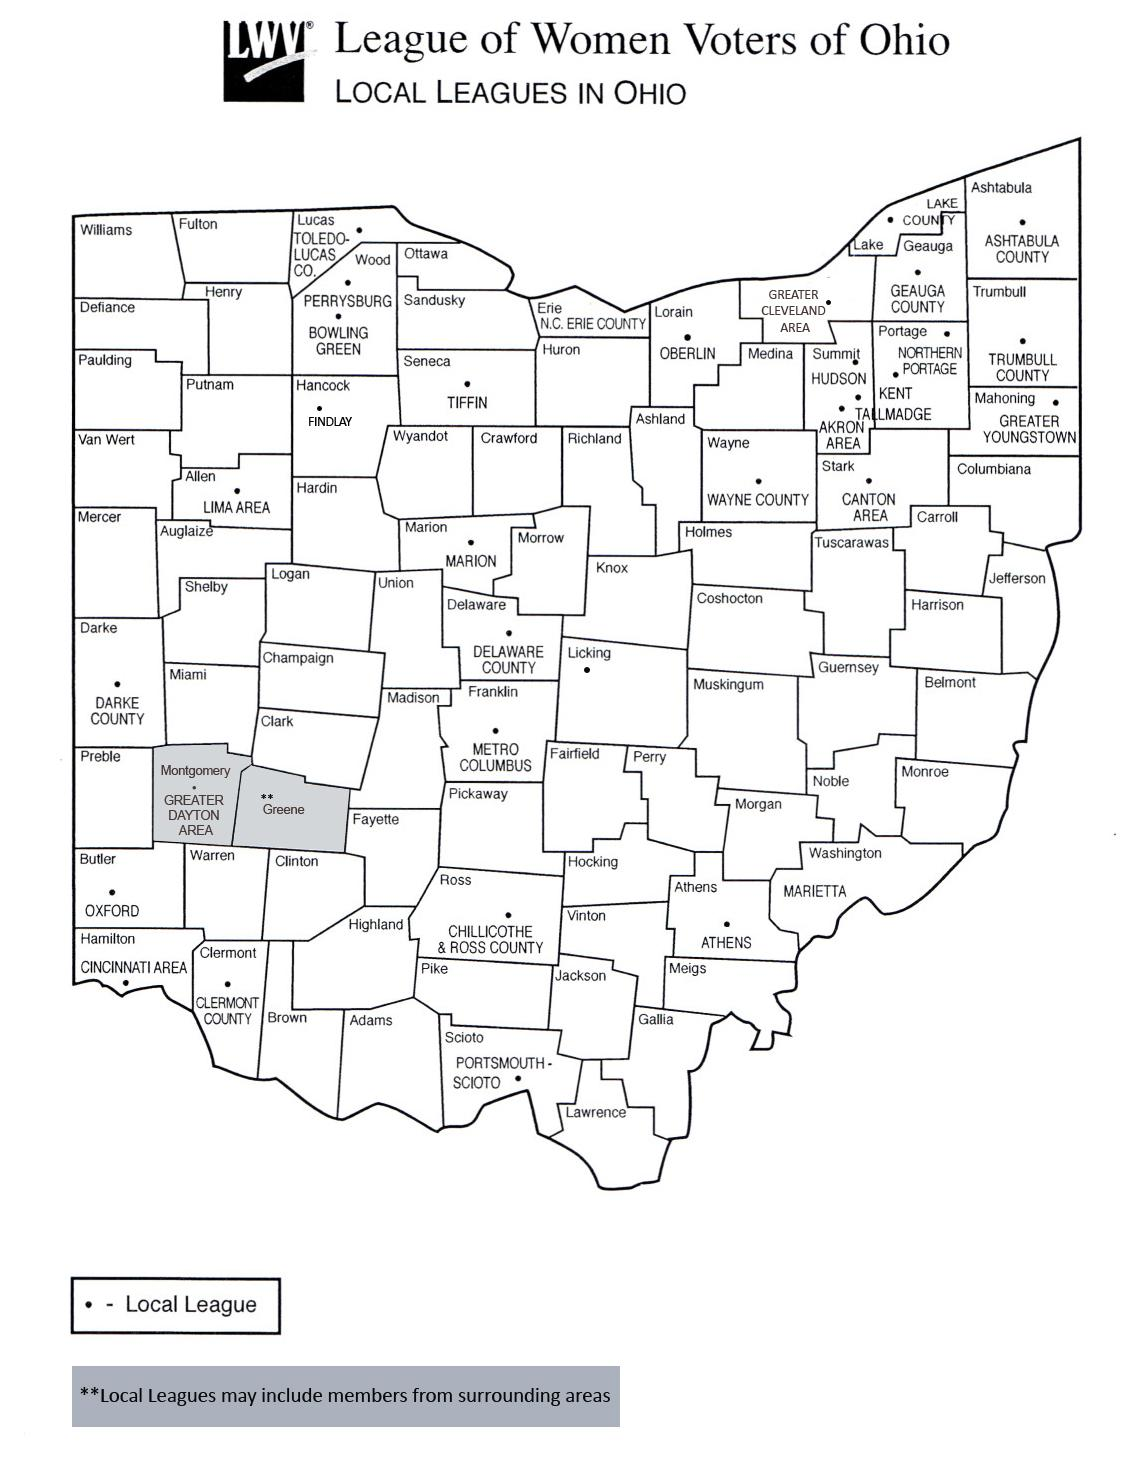 Local Leagues and At-Large Units in Ohio